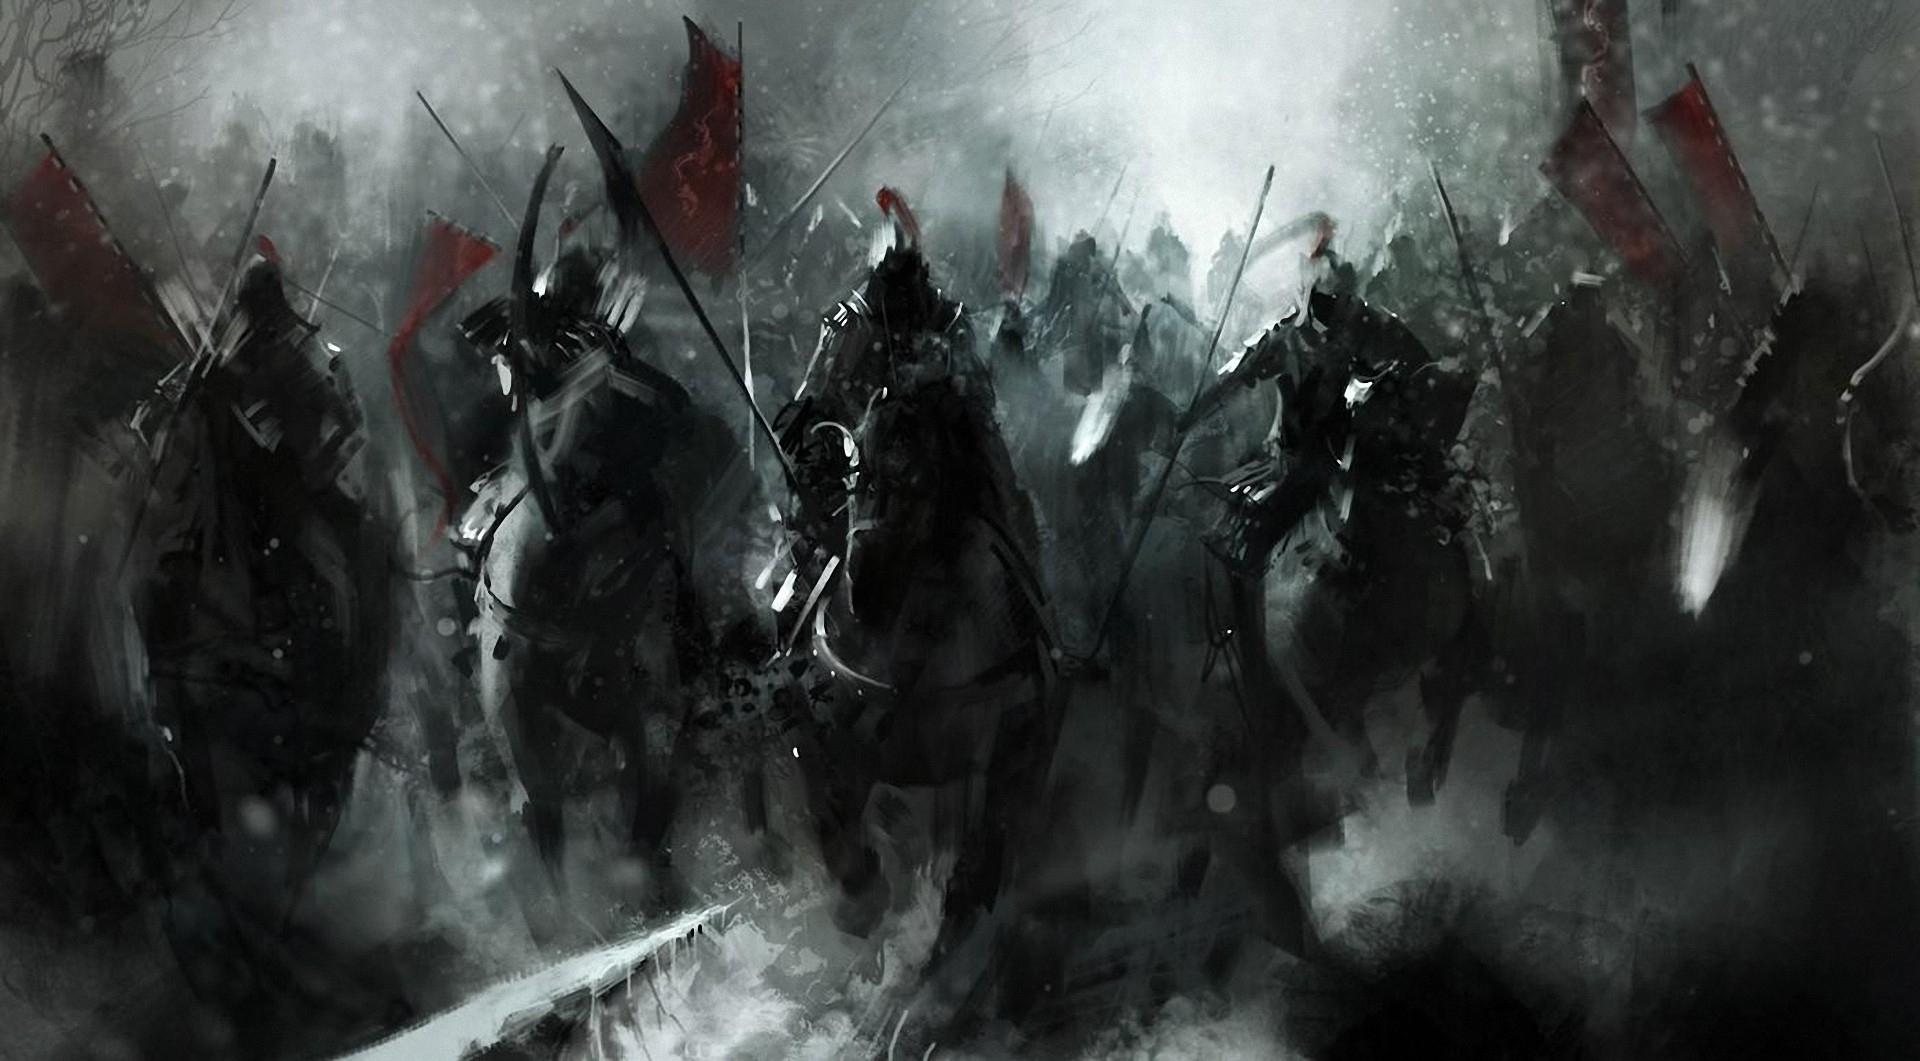 mongols-fantasy-knight-warrior-soldiers-animals-horses-asian-oriental